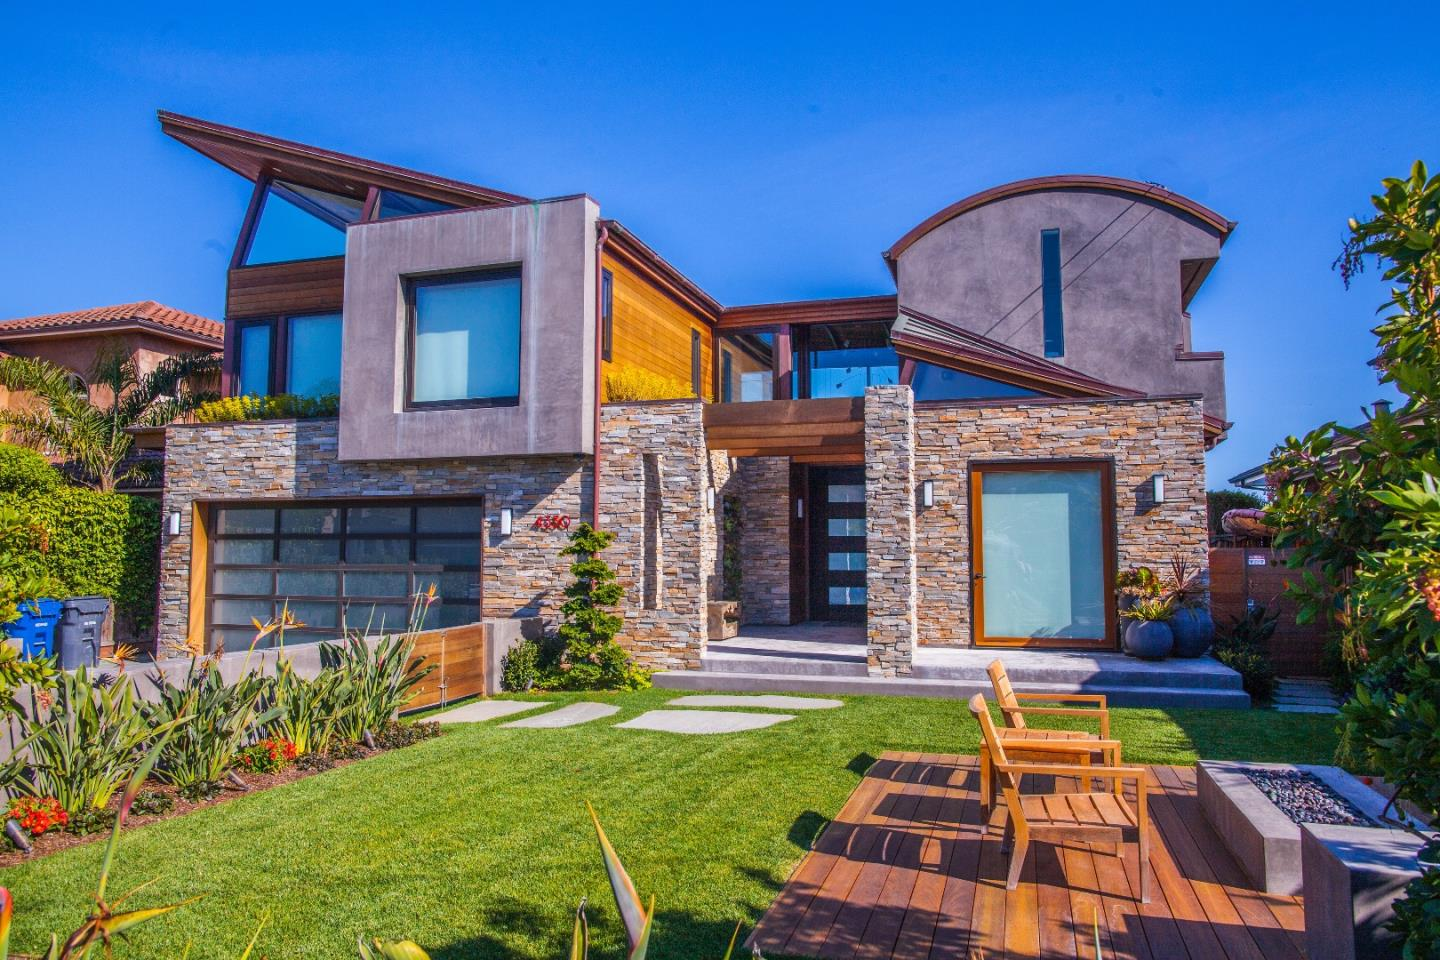 San francisco homes neighborhoods architecture and real for Most expensive home for sale